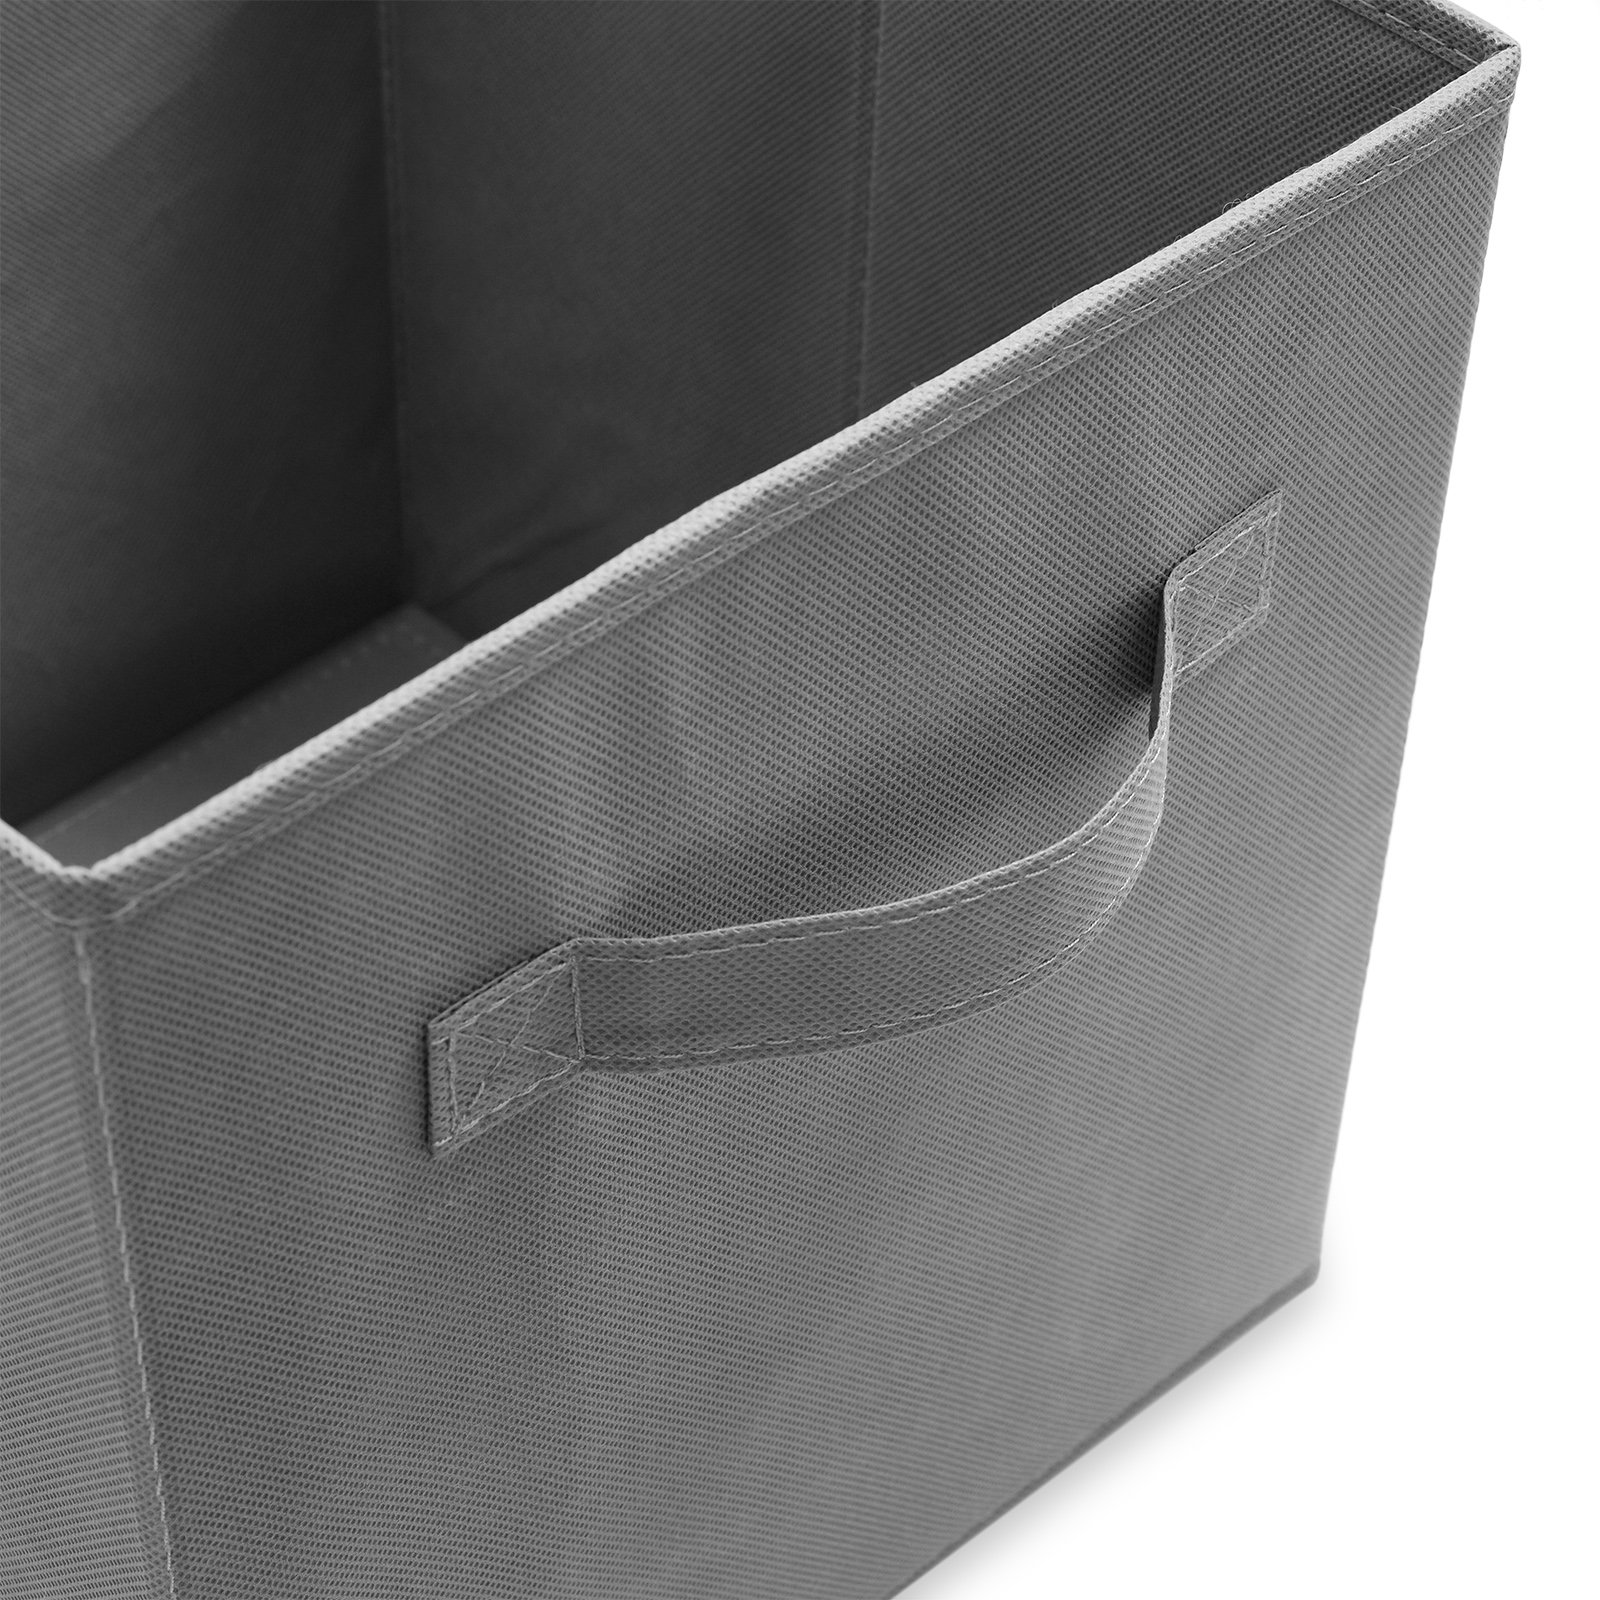 6-Collapsible-Foldable-Cloth-Fabric-Cubby-Cube-Storage-Bins-Baskets-for-Shelves thumbnail 20